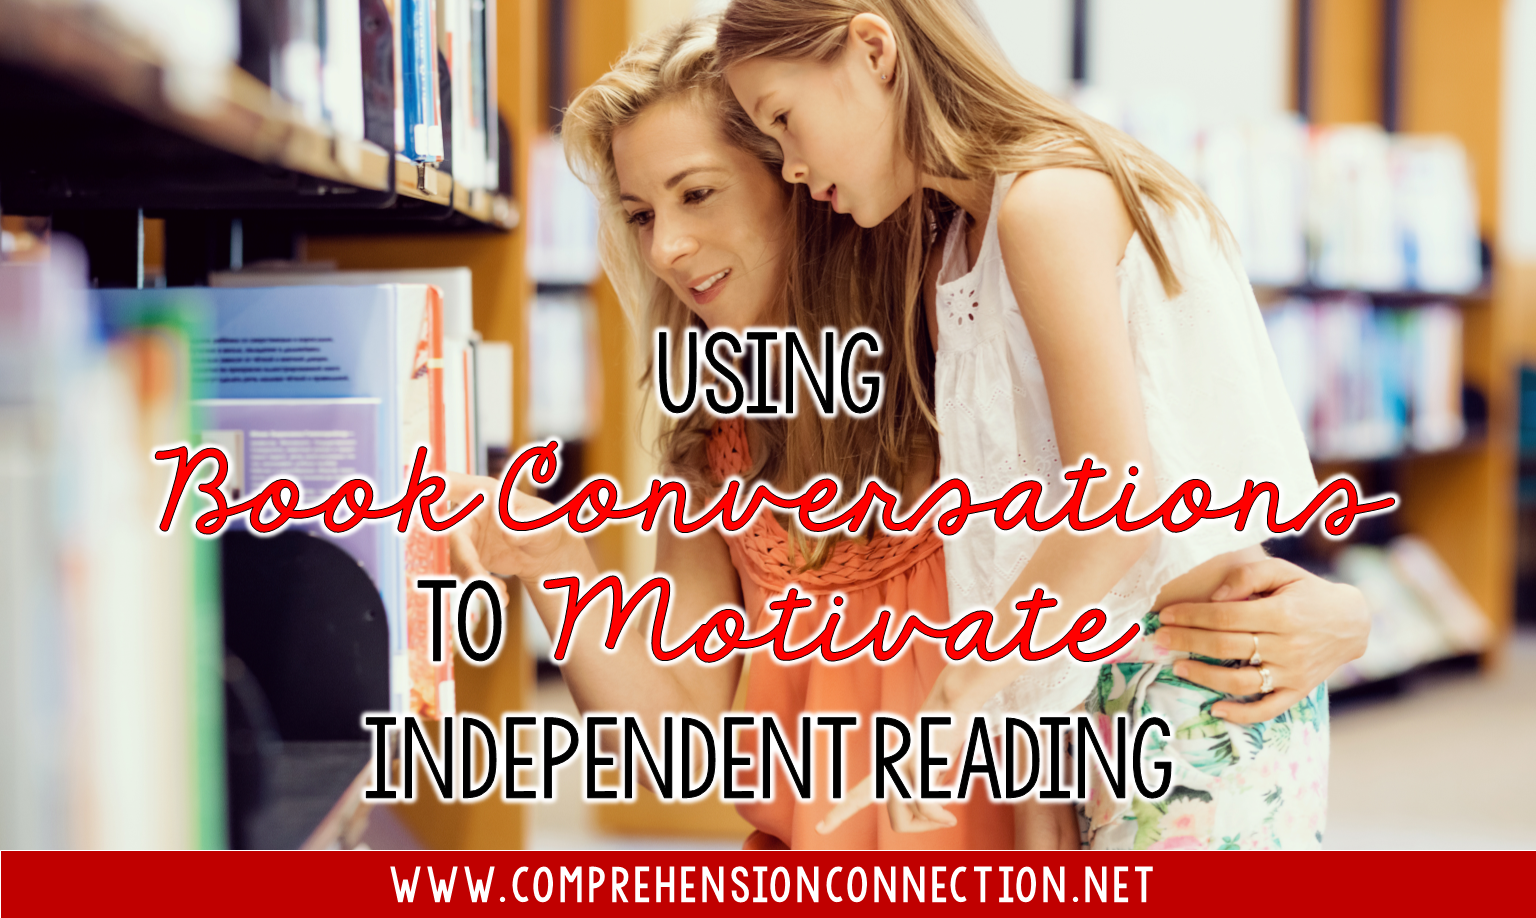 Conversations between teachers and students are critical in motivating students, but how can we use them to motivate independent reading? Check out this post for ideas you can use in your classroom to make book conversations more meaningful.